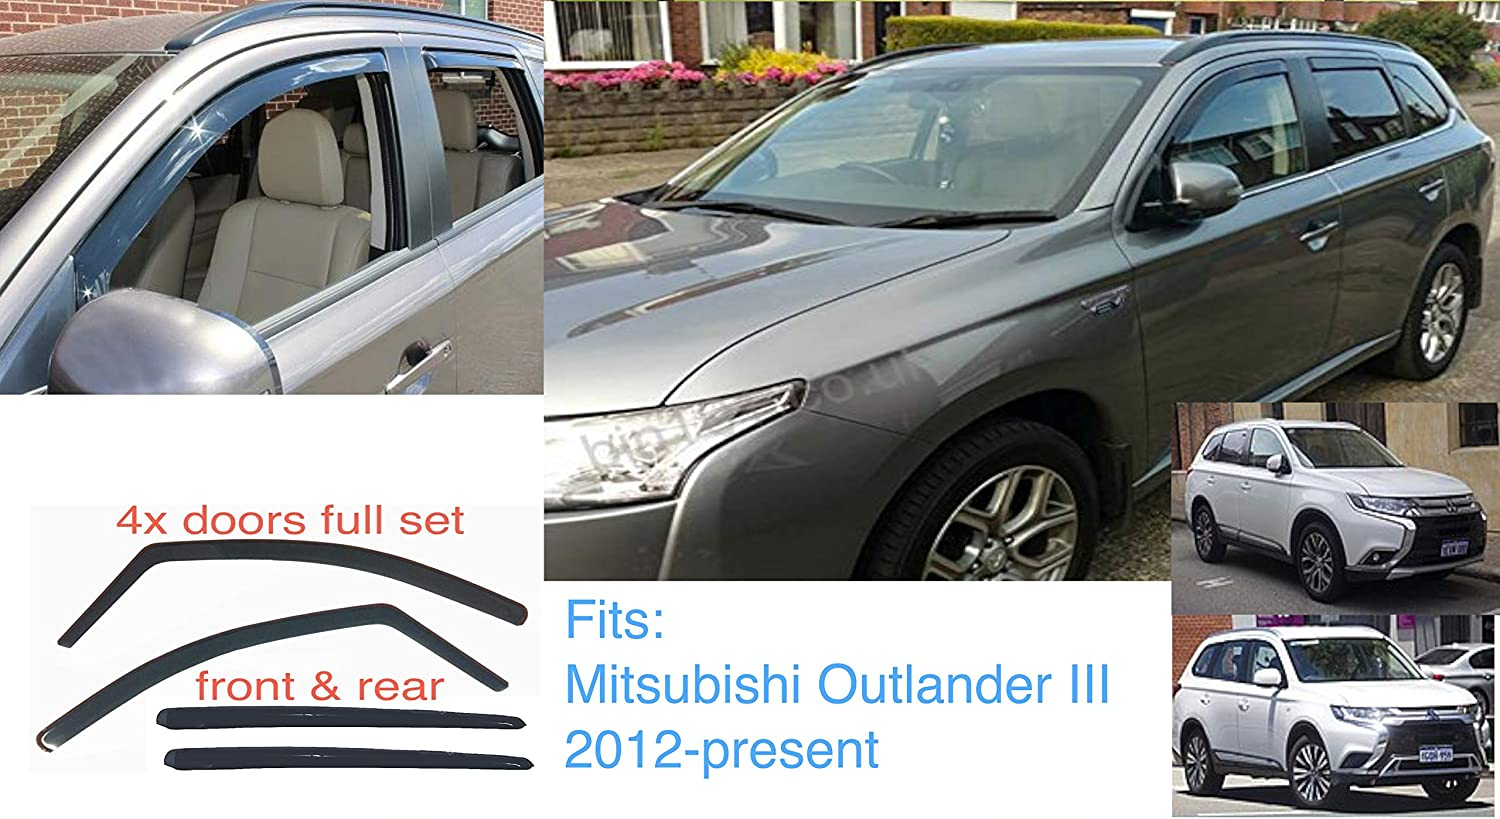 present Wind Deflectors Dark Smoke Tinted Acrylic Glass Door Side Windows Interior In-Channel Visors Rain Snow Sun Guards AC WOW 4x Front Rear compatible with MITSUBISHI Outlander PHEV 2013